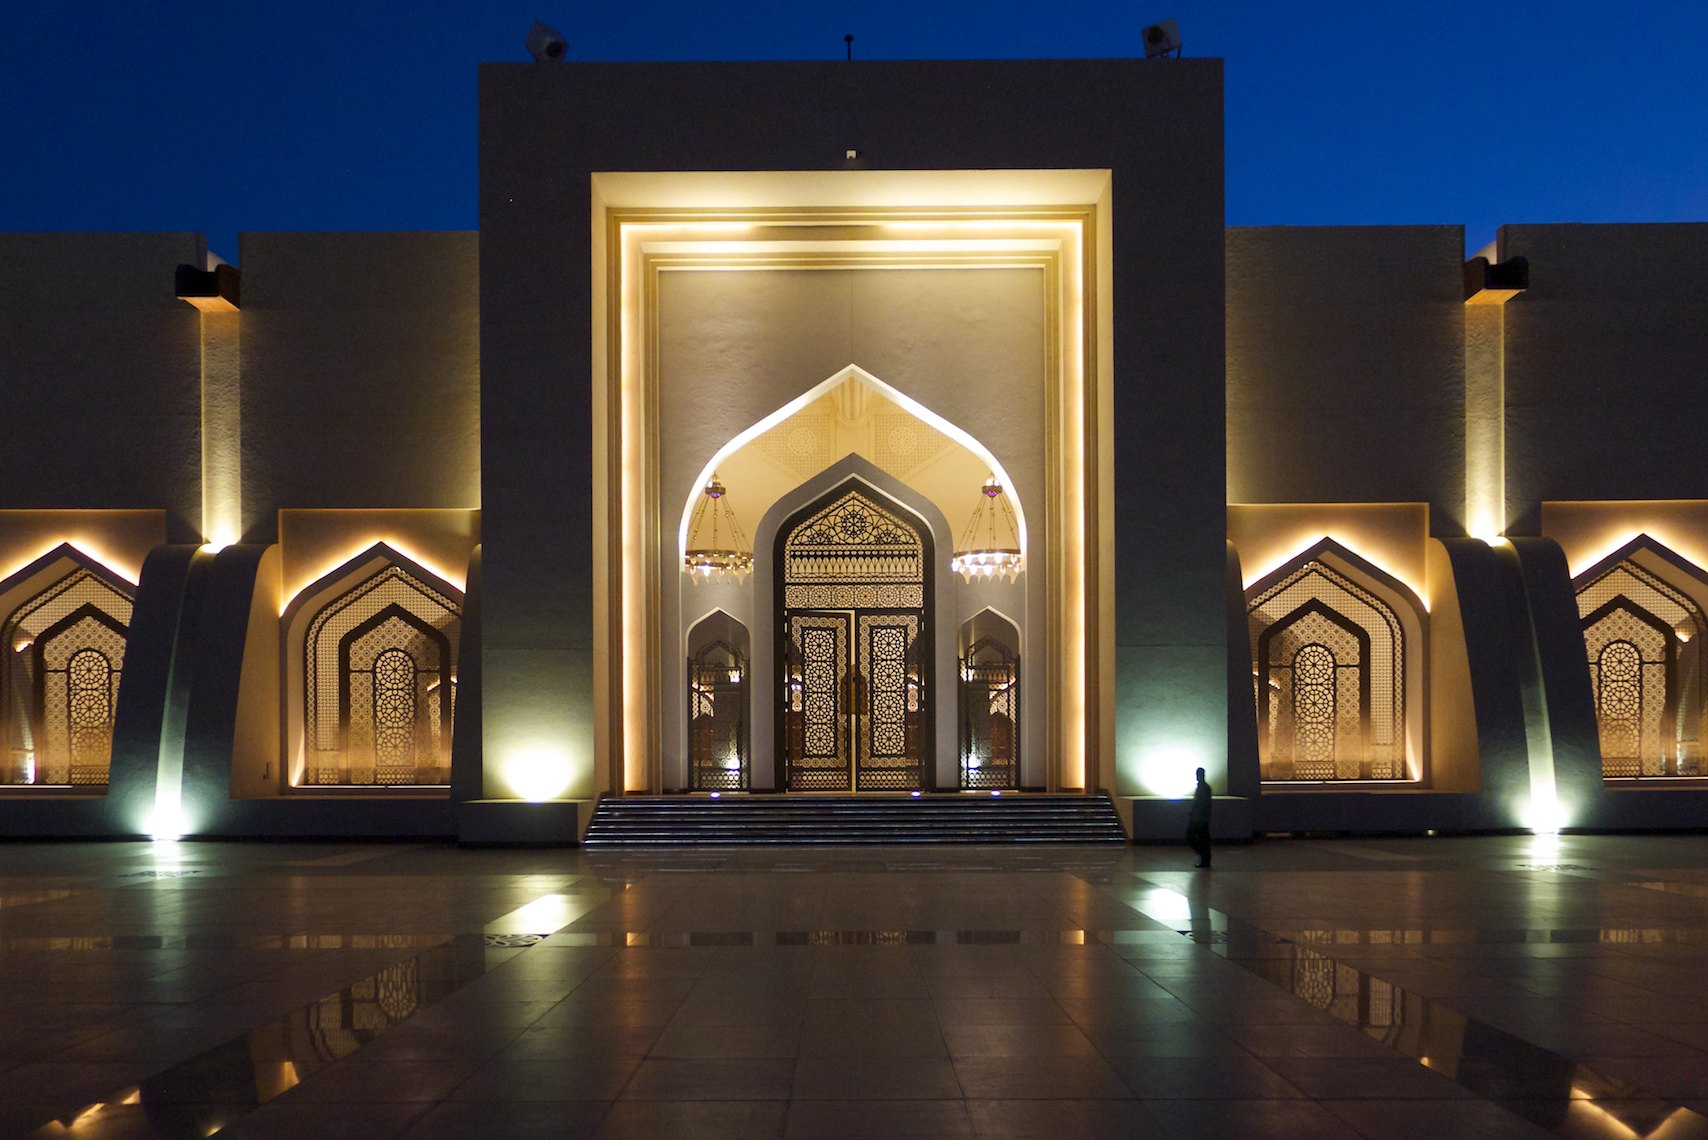 Qatar National Mosque entrance